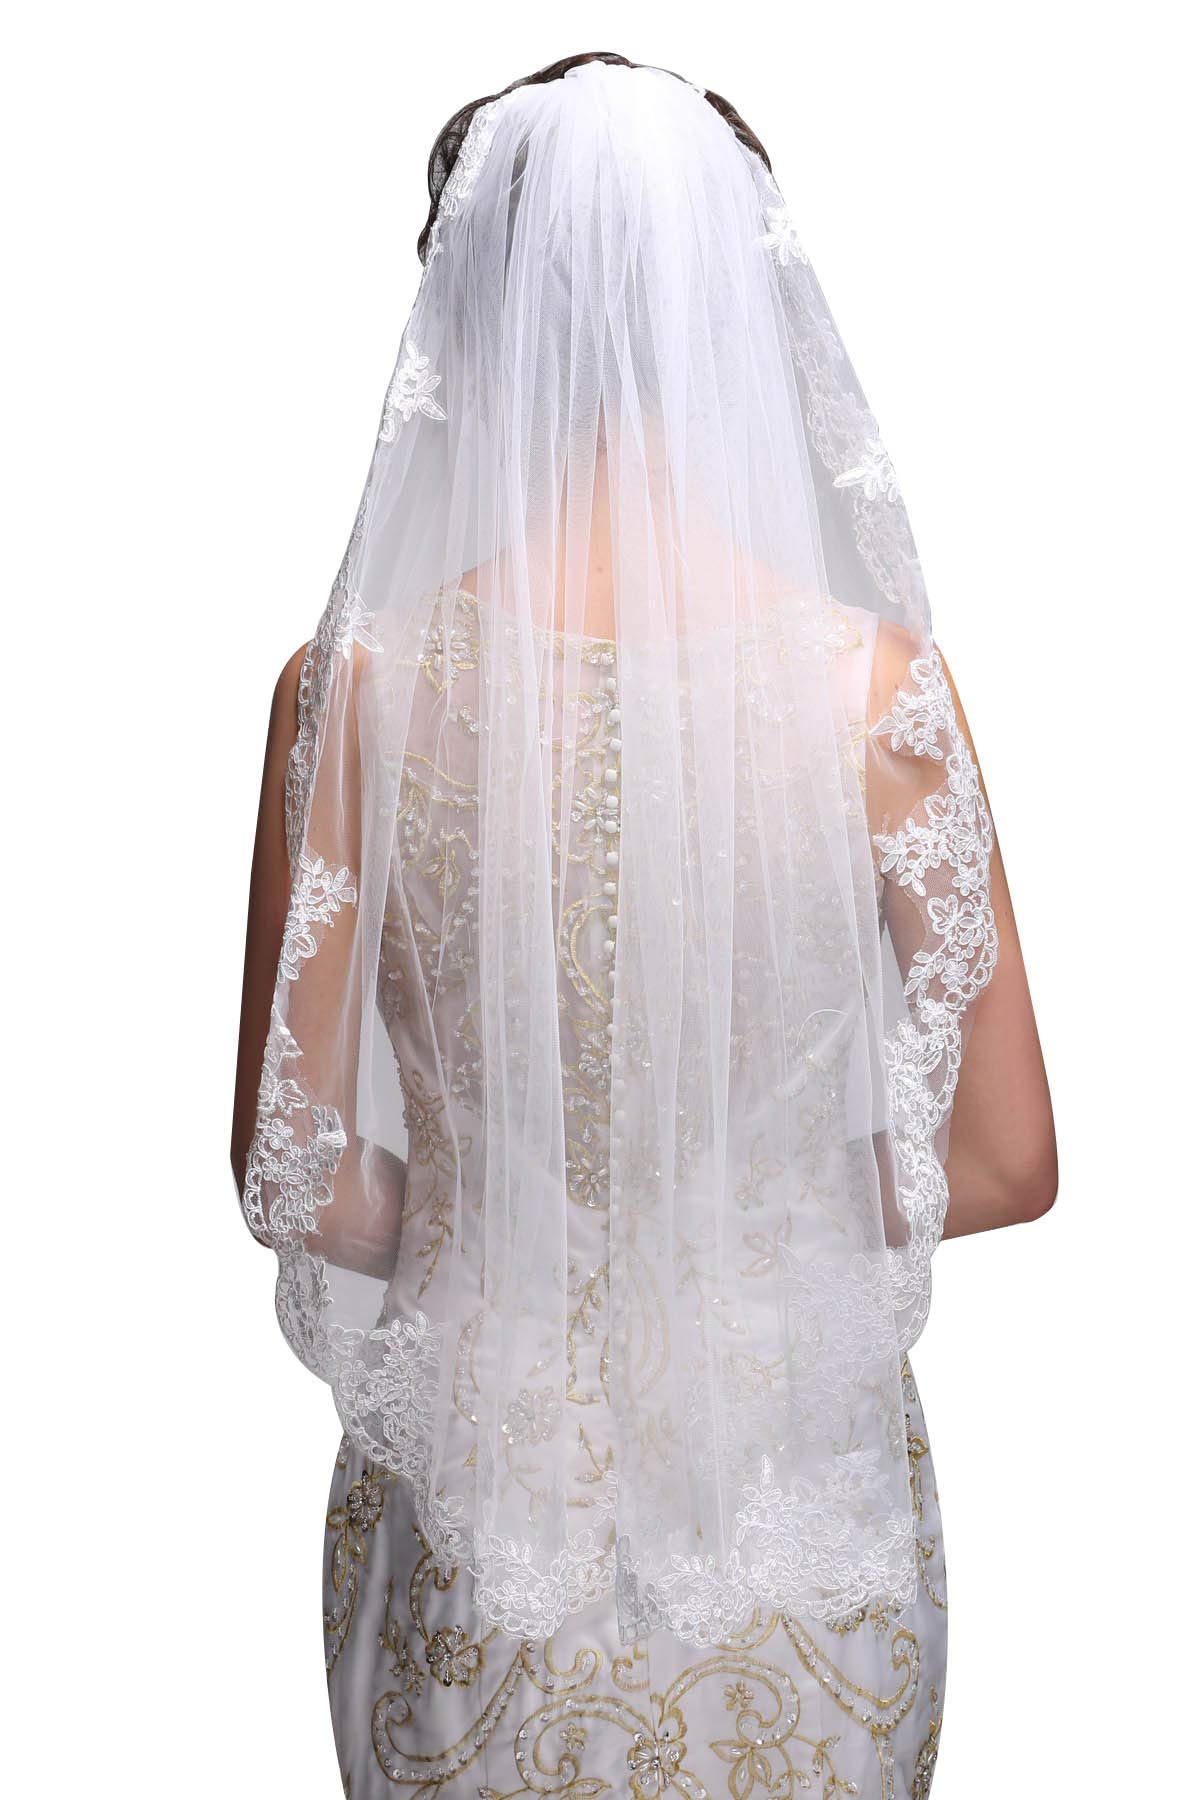 GEORGE BRIDE Simple Elegent Lace Appliques Wedding Veil One Size With Comb Ivory by GEORGE BRIDE